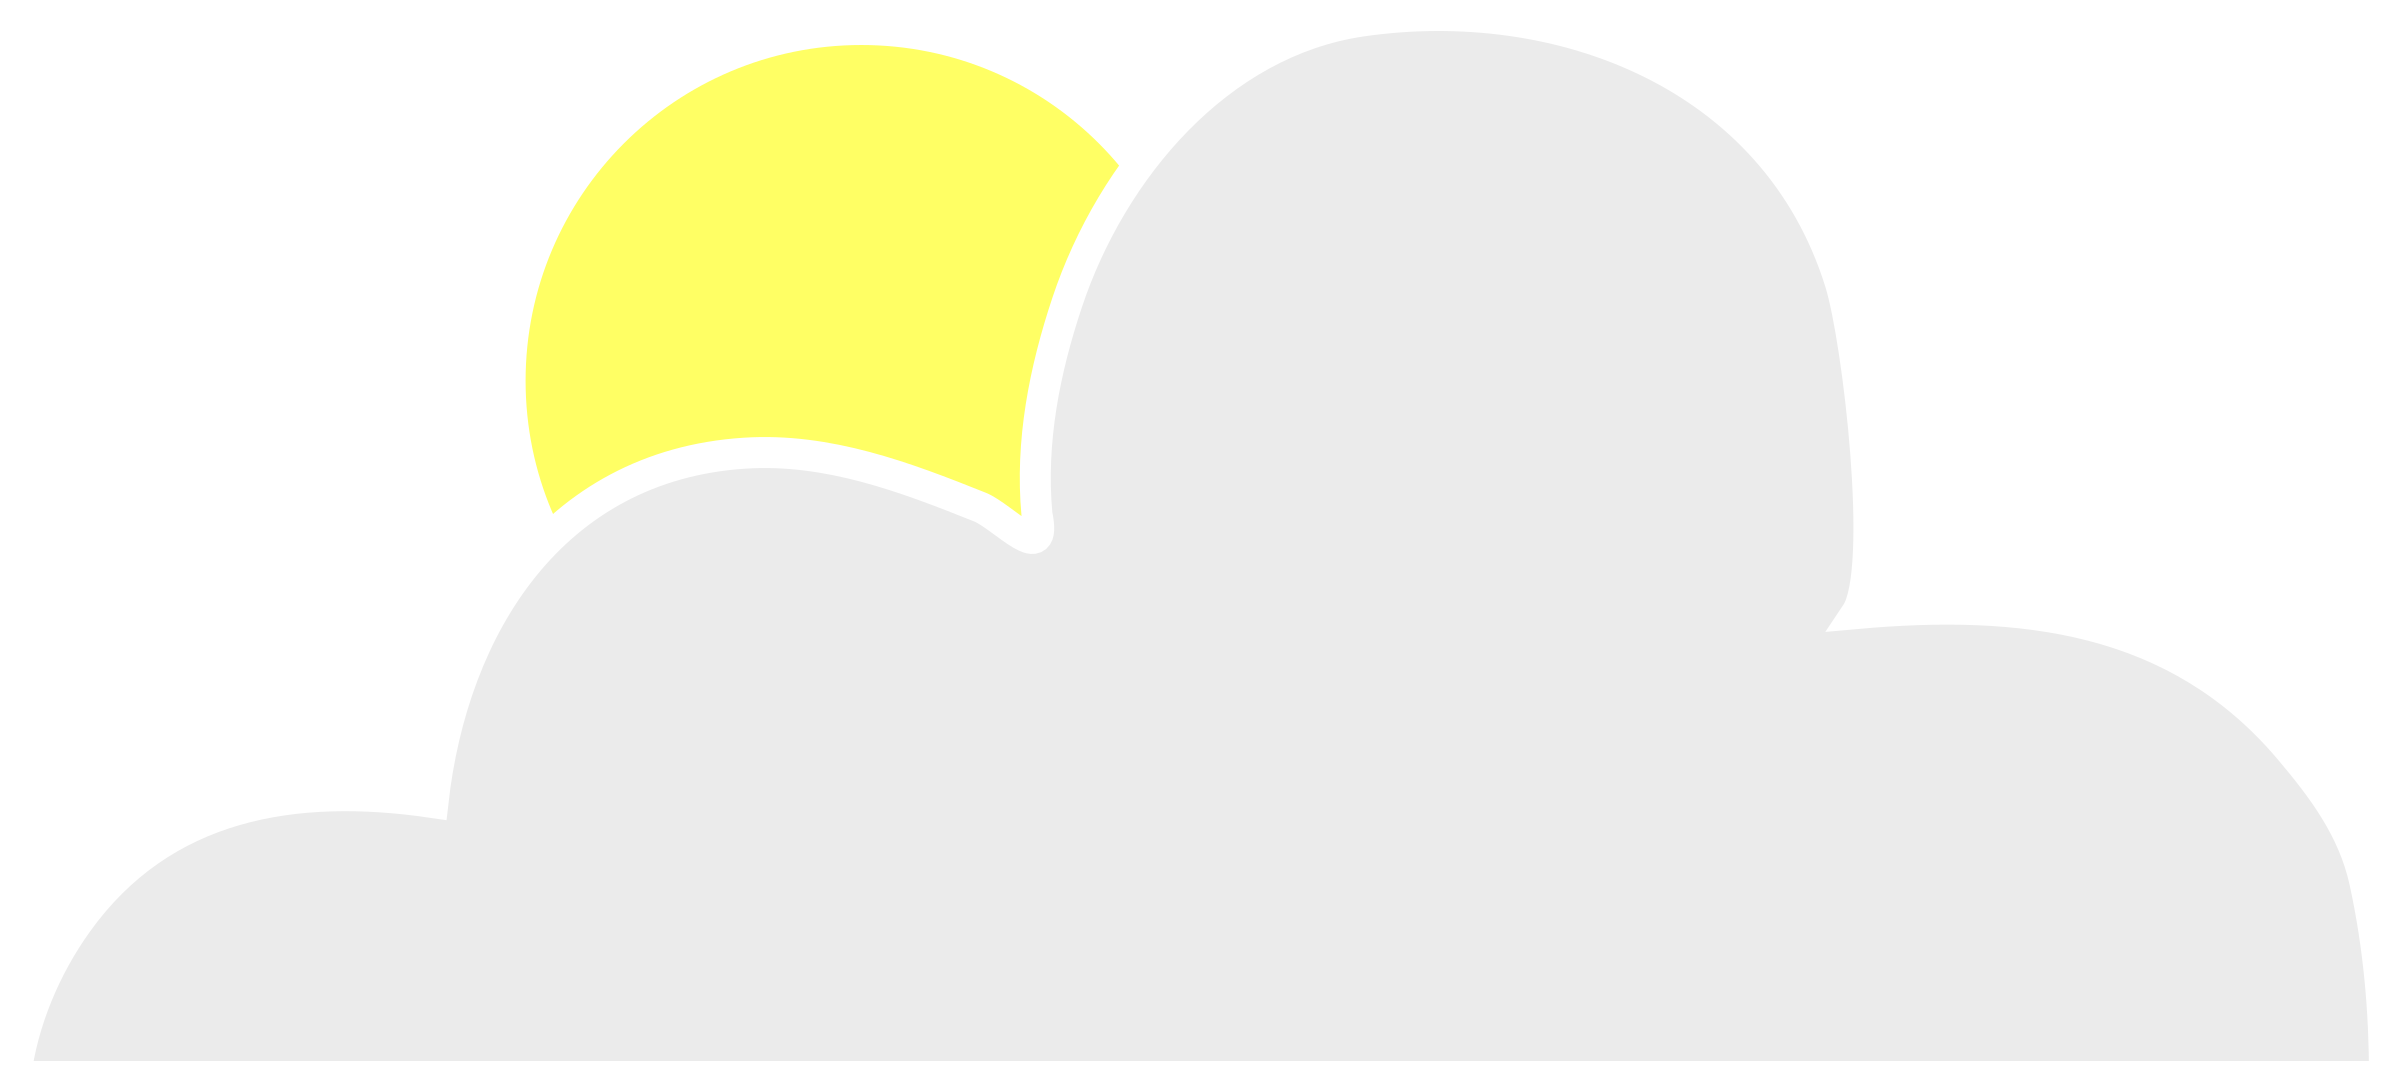 Sun and cloud clipart black and white download Clipart - Sun behind cloud black and white download